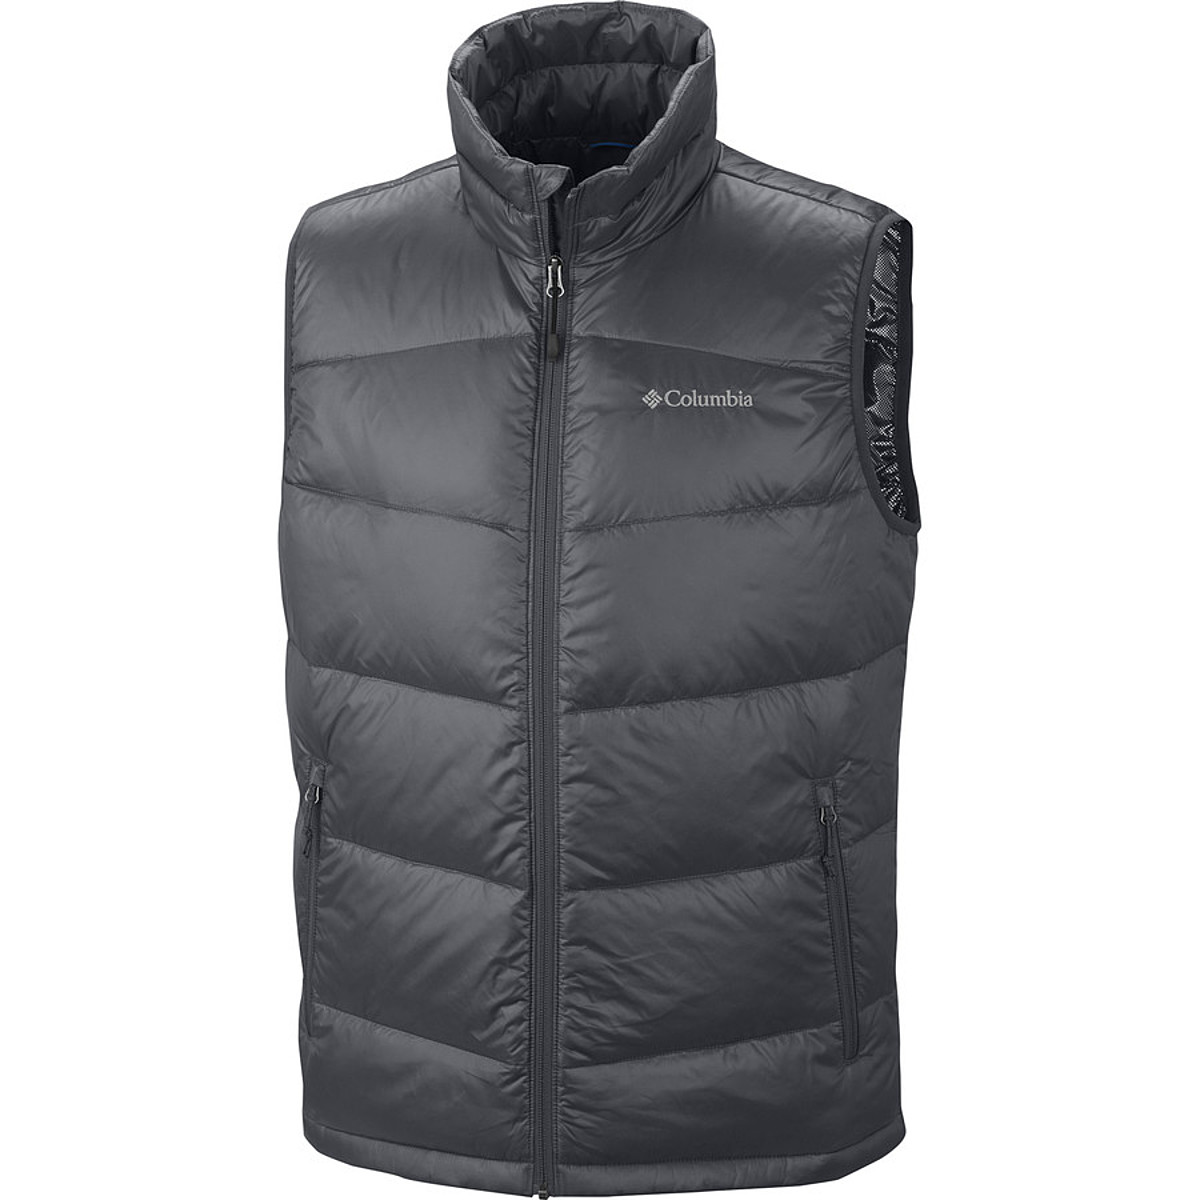 photo: Columbia Gold 650 Turbodown Down Vest down insulated vest